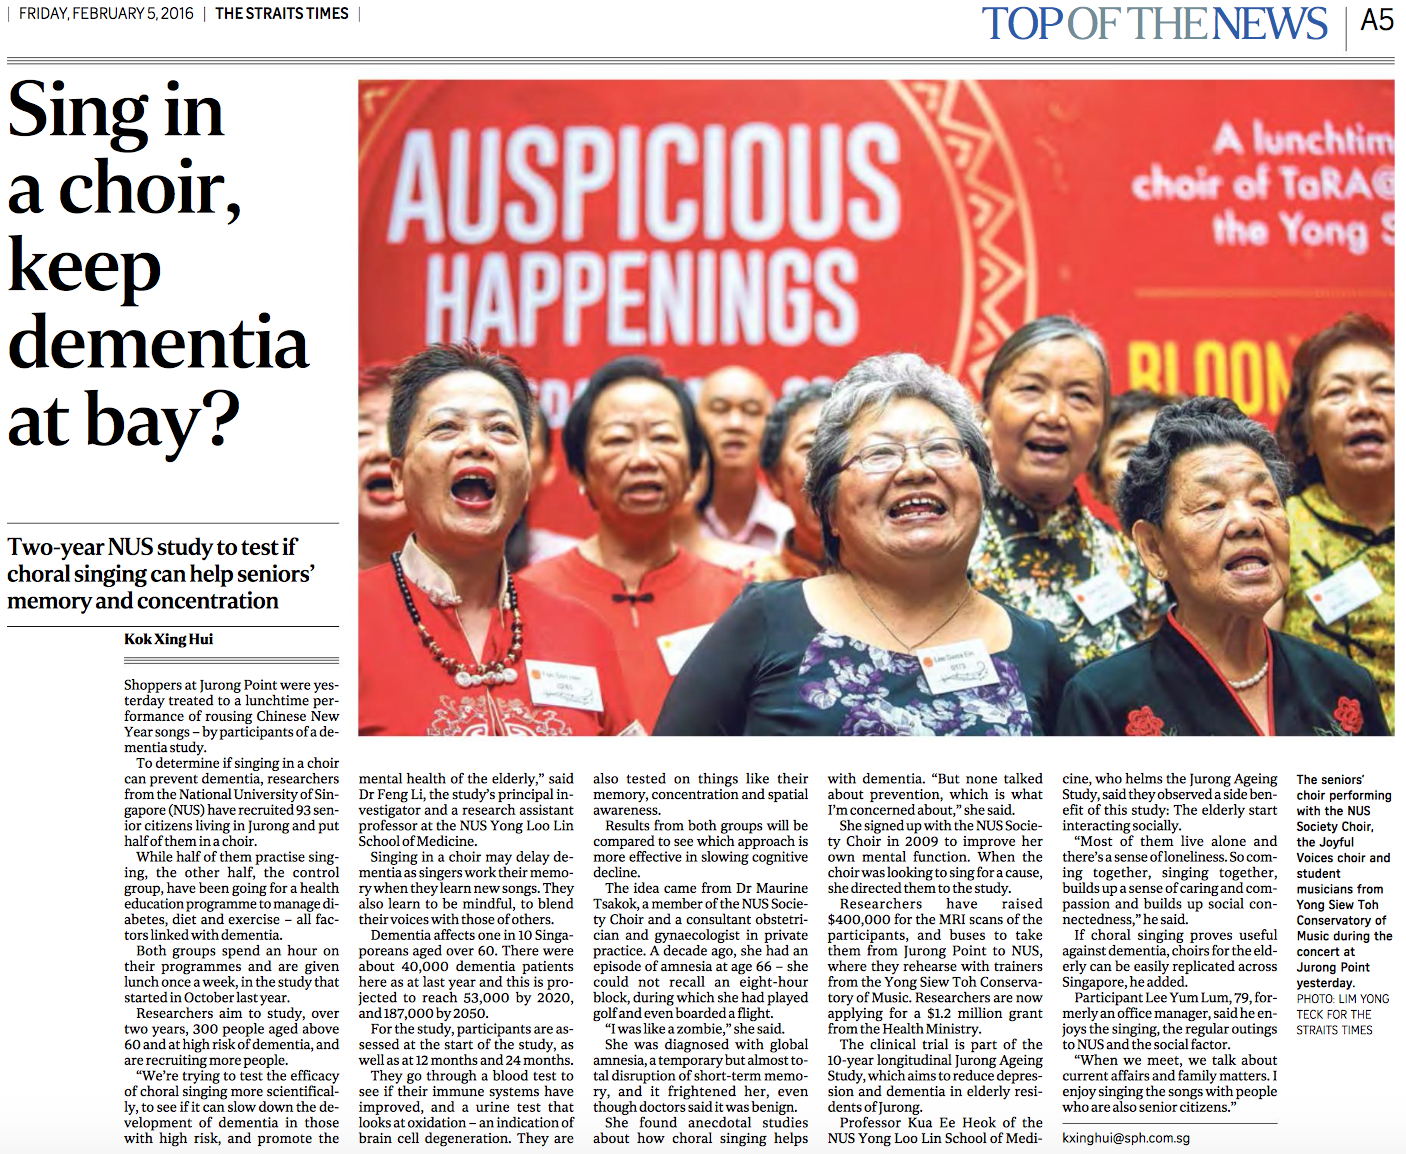 Choral singing and dementia research feature for The Straits Times (www.straitstimes.com)